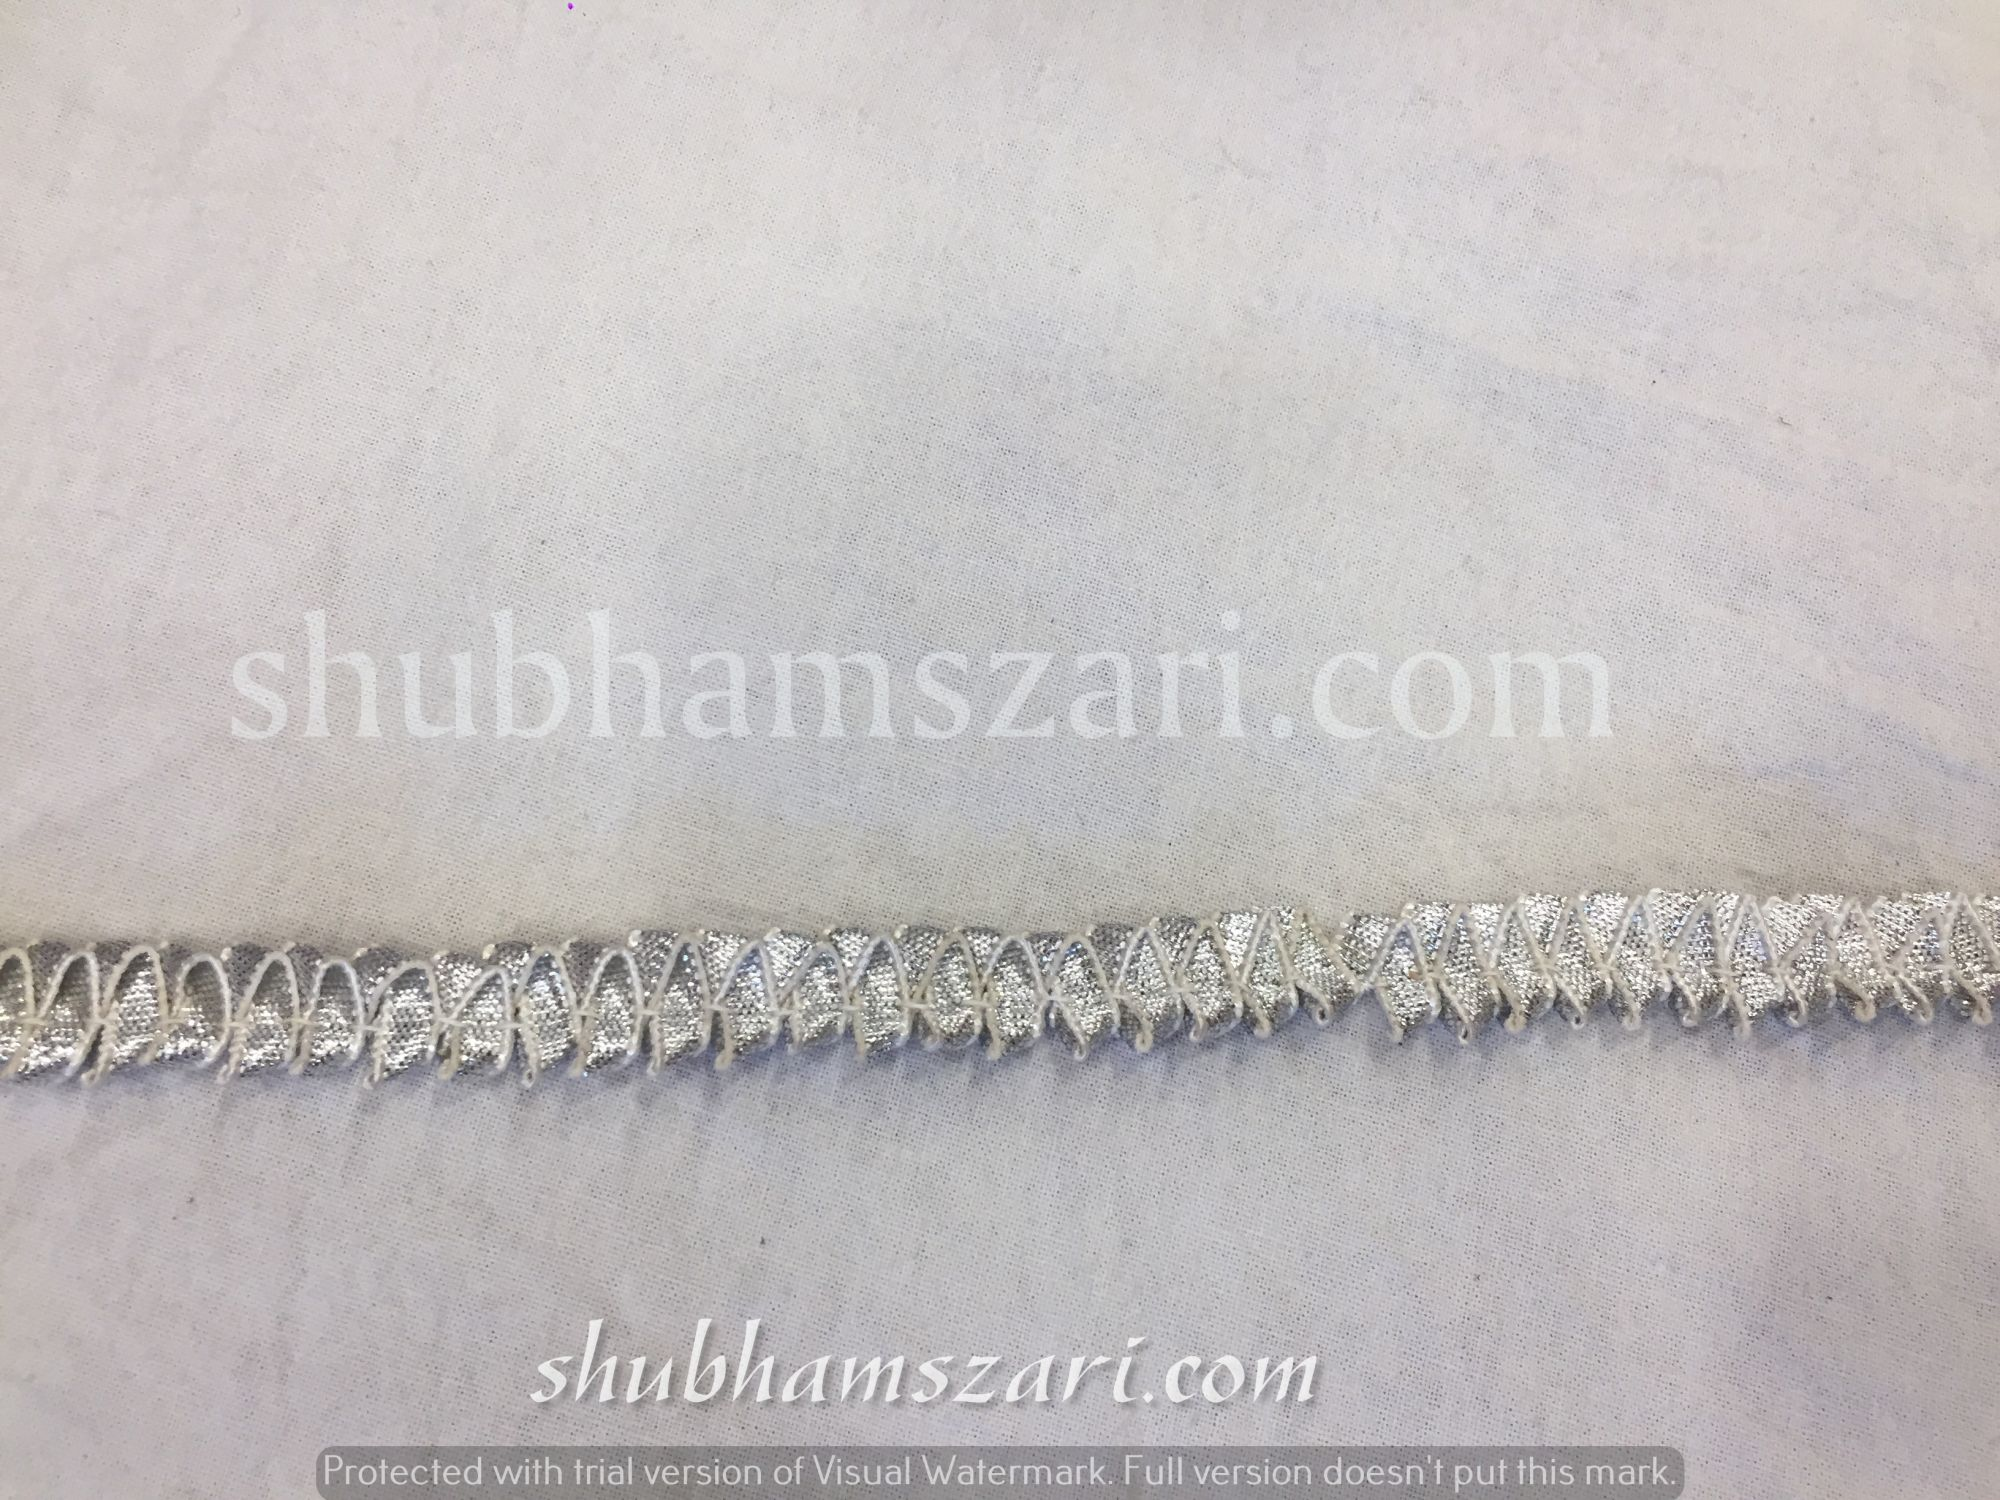 bijiya half inch frill in Silver colour lace